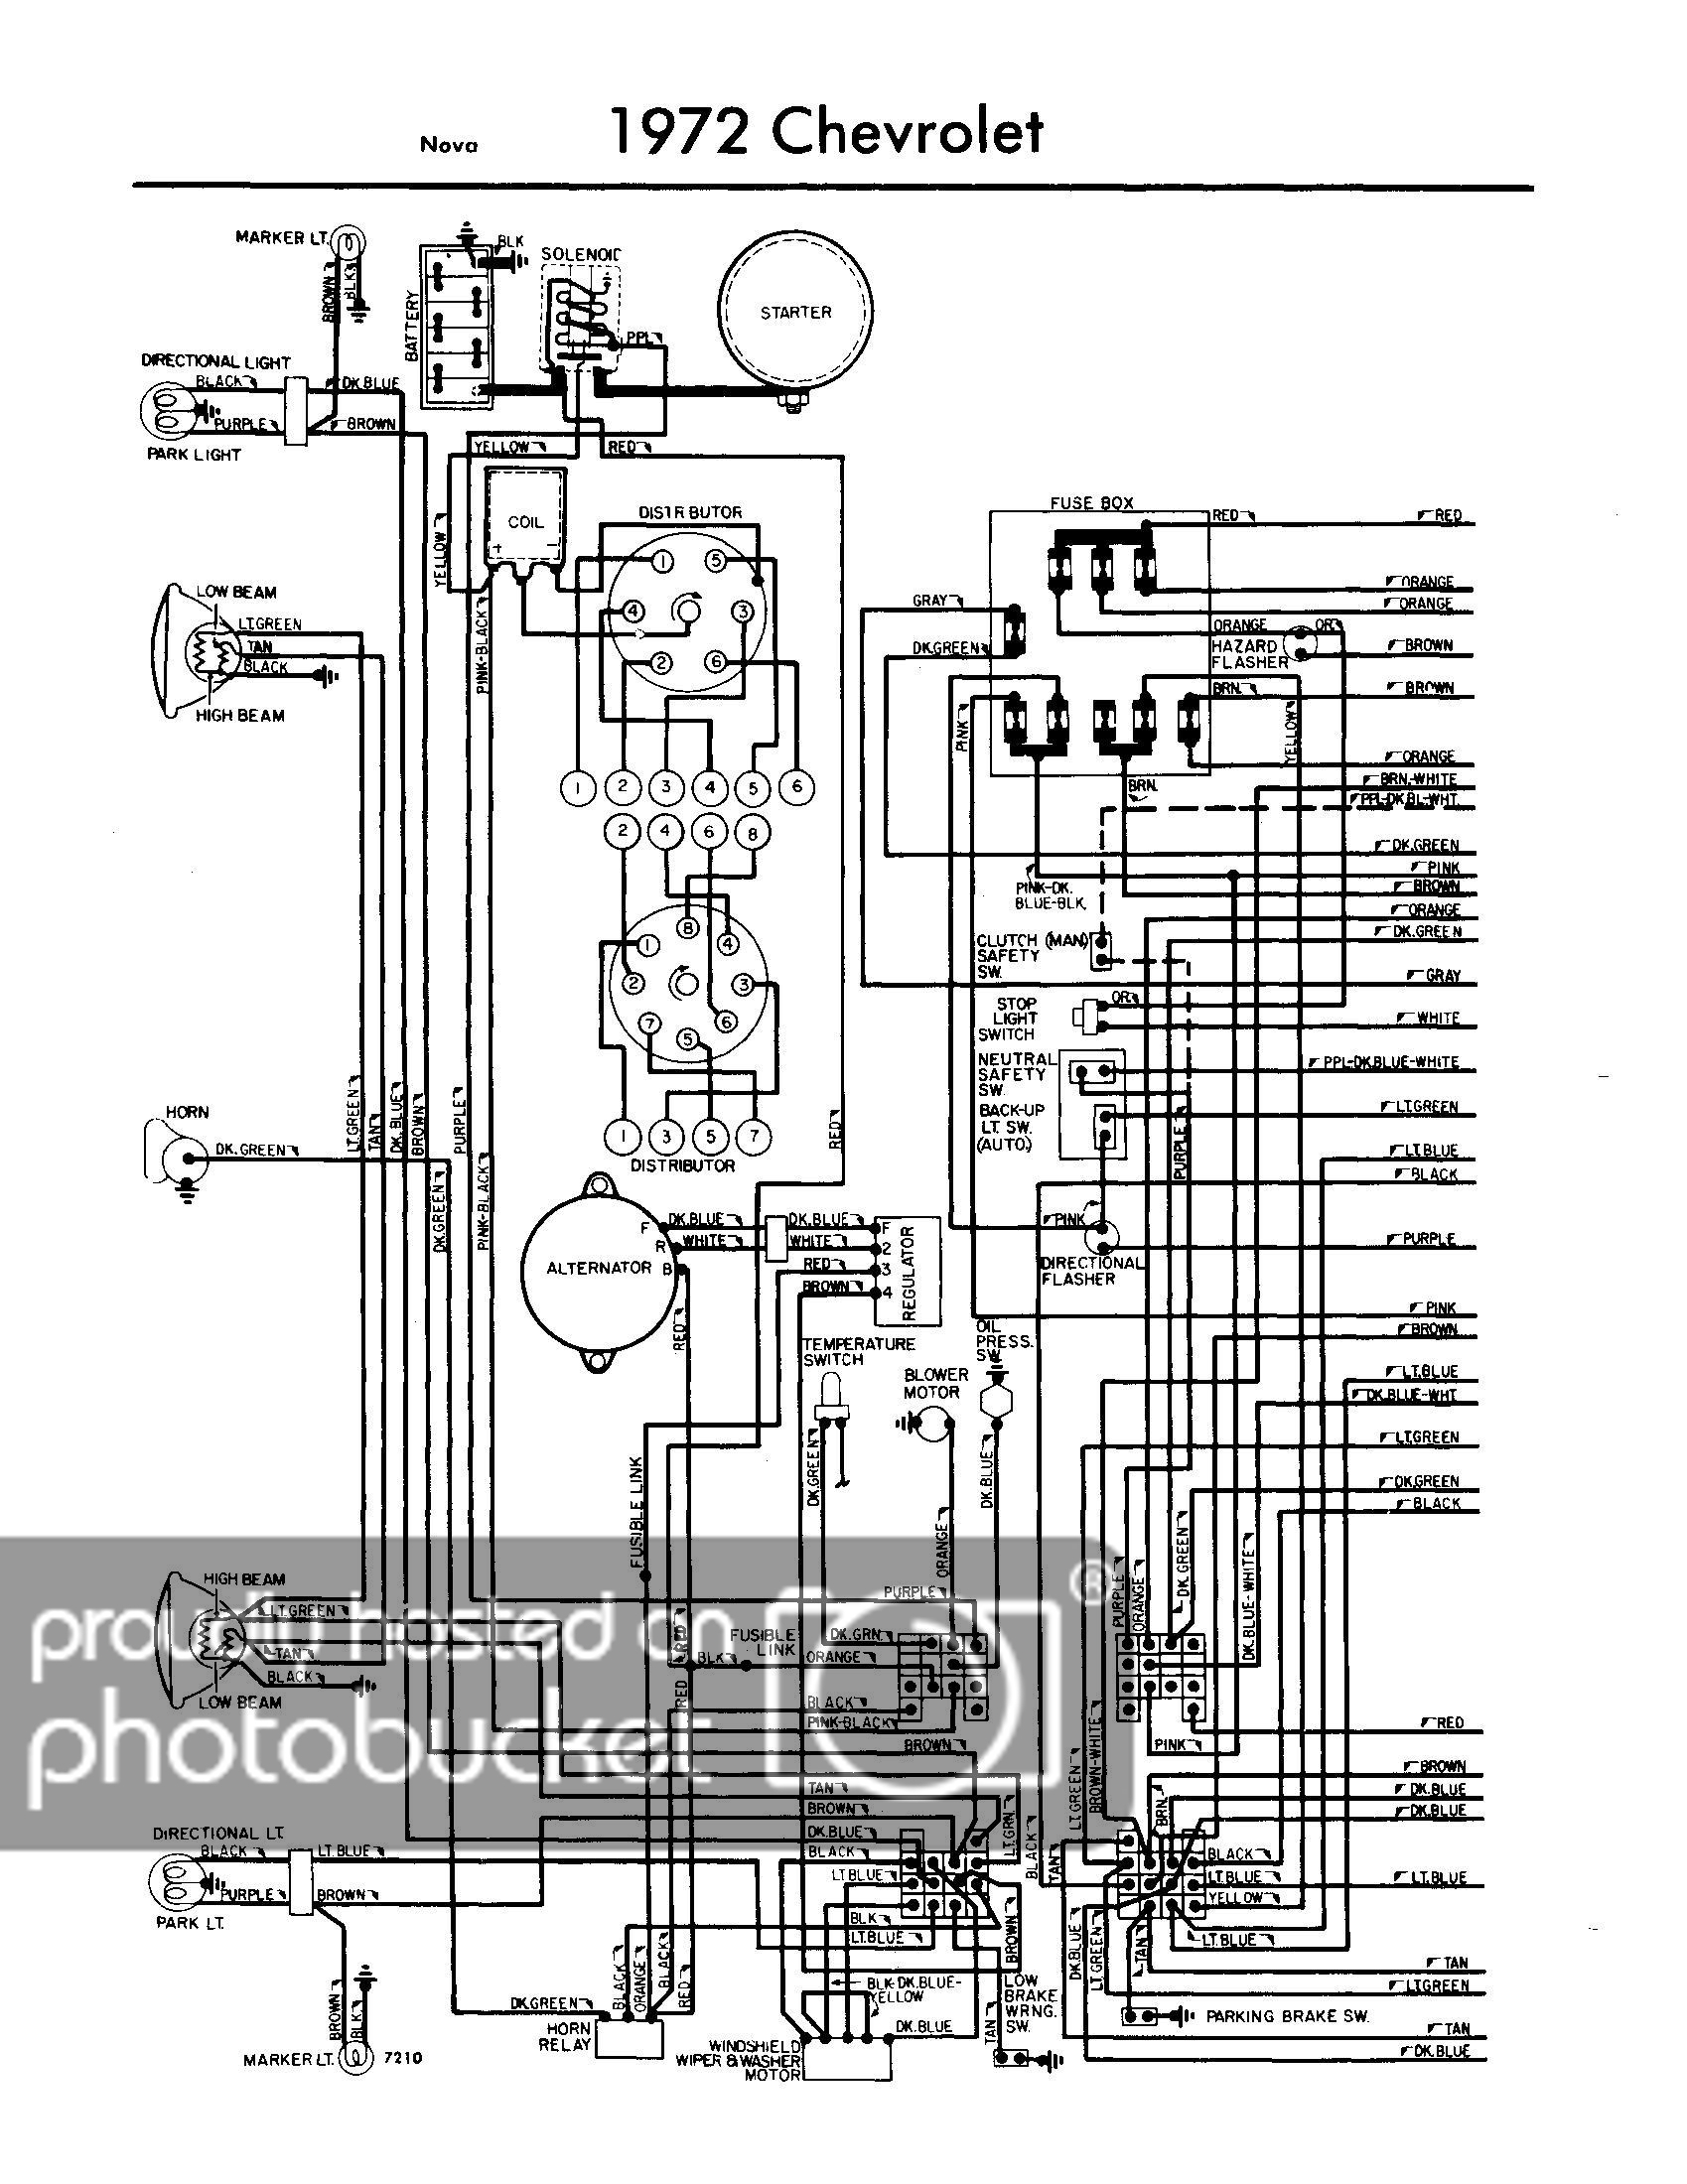 Ford F100 Fuse Box   Wiring Library - Start Run Capacitor Wiring Diagram